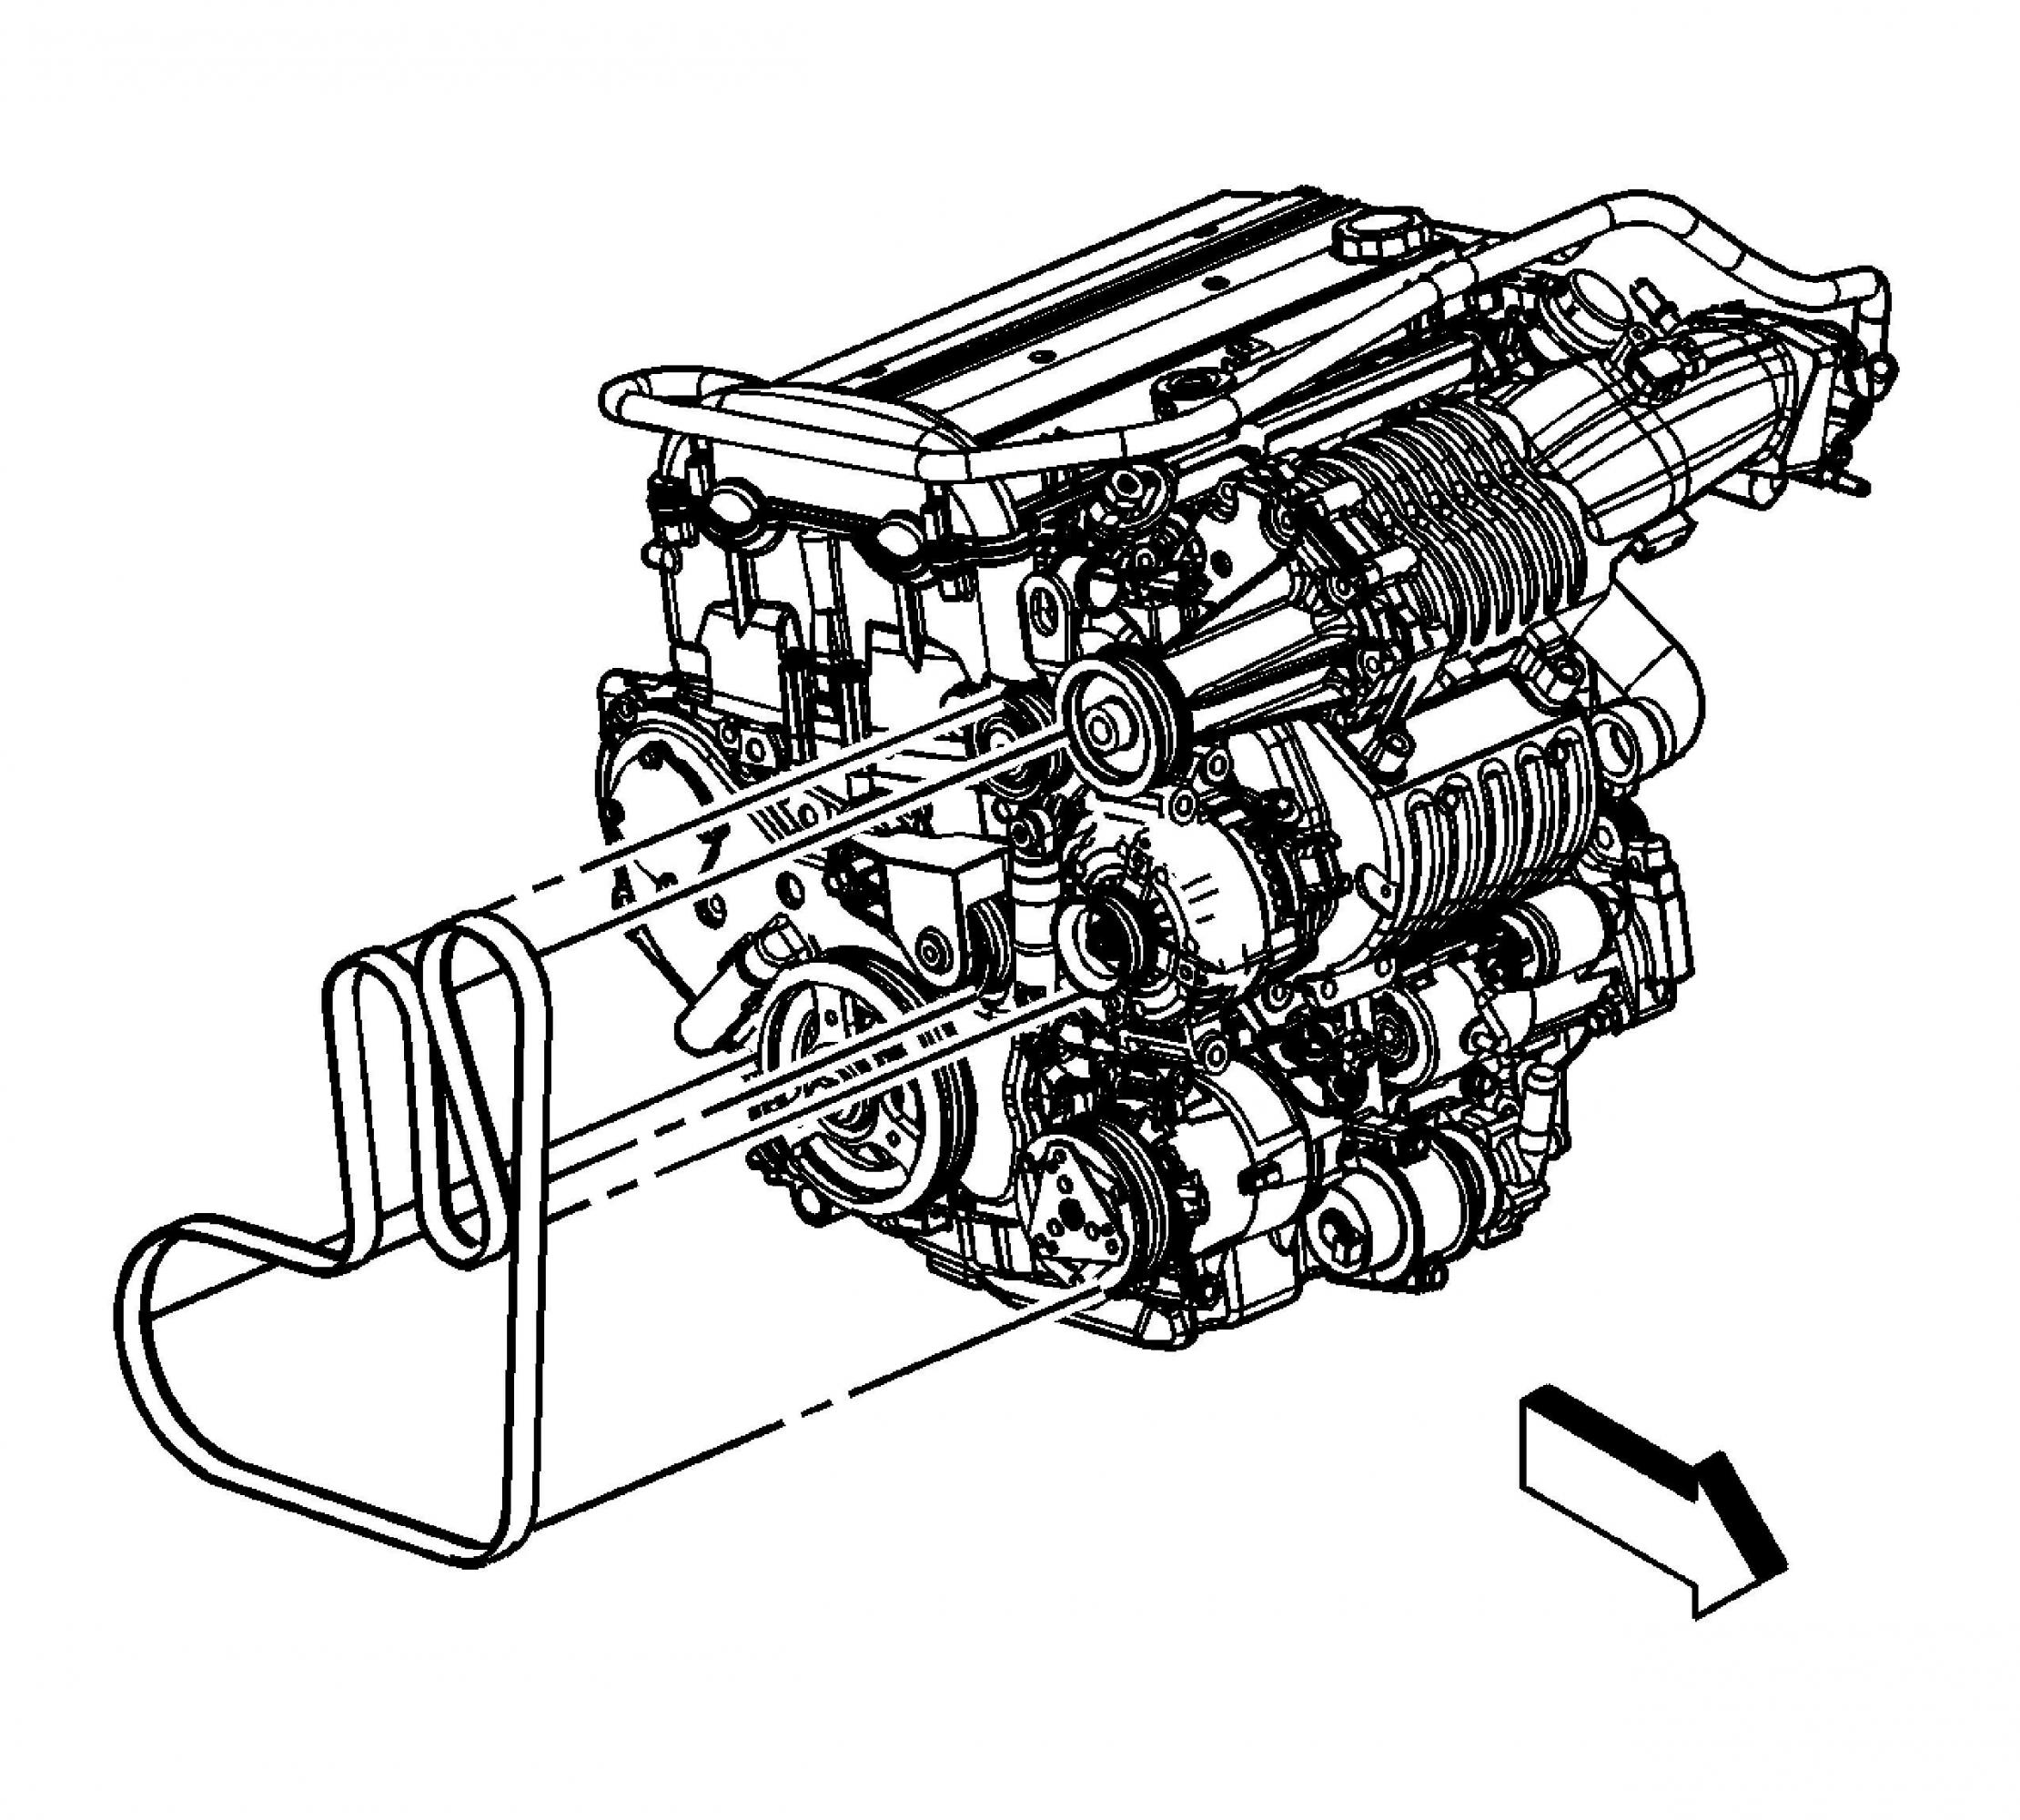 Chevy Malibu Serpentine Belt Diagram